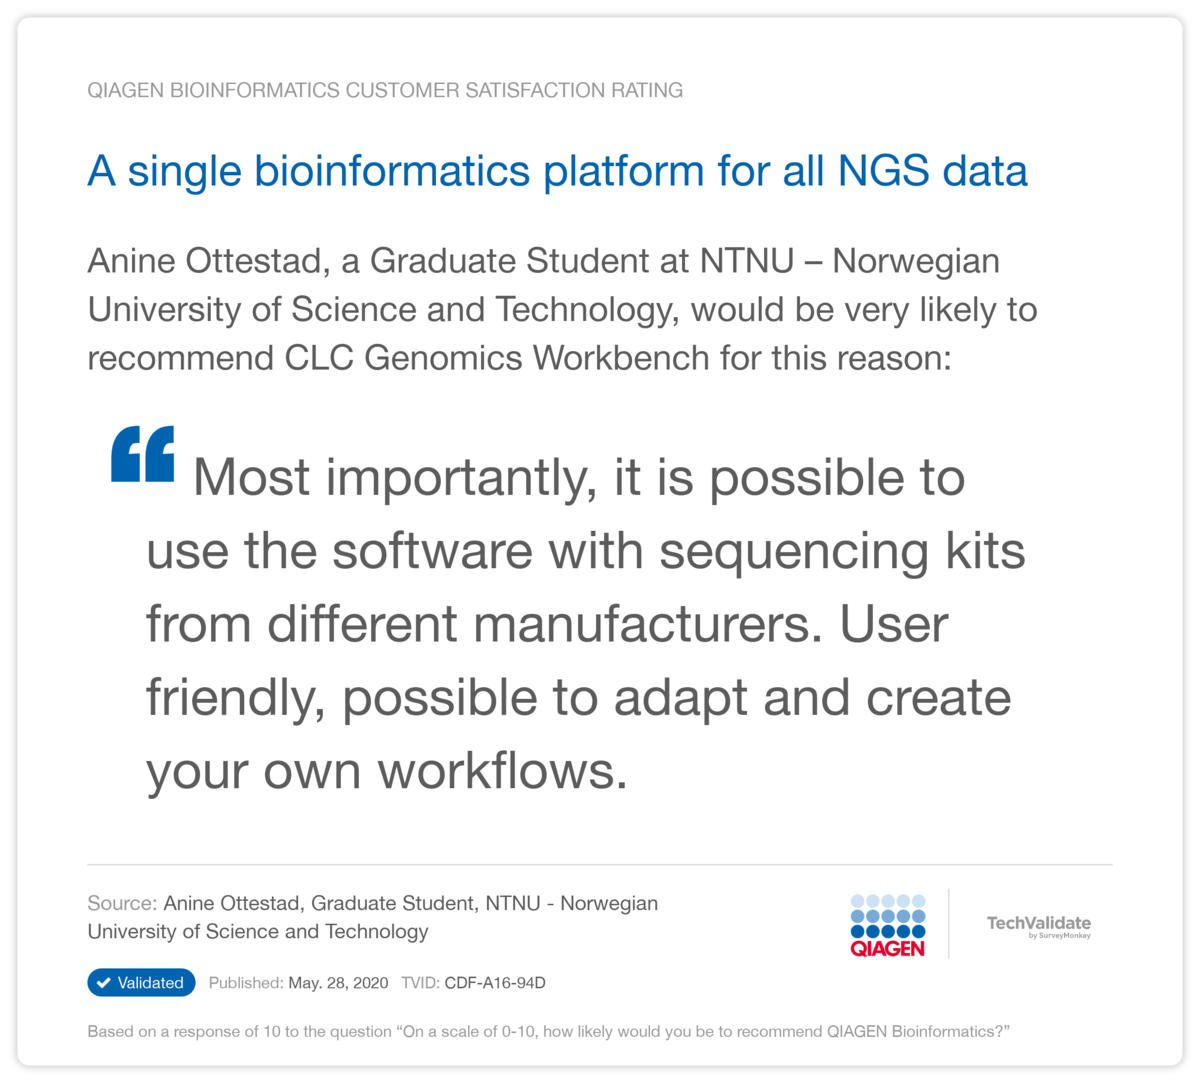 A single bioinformatics platform for all NGS data